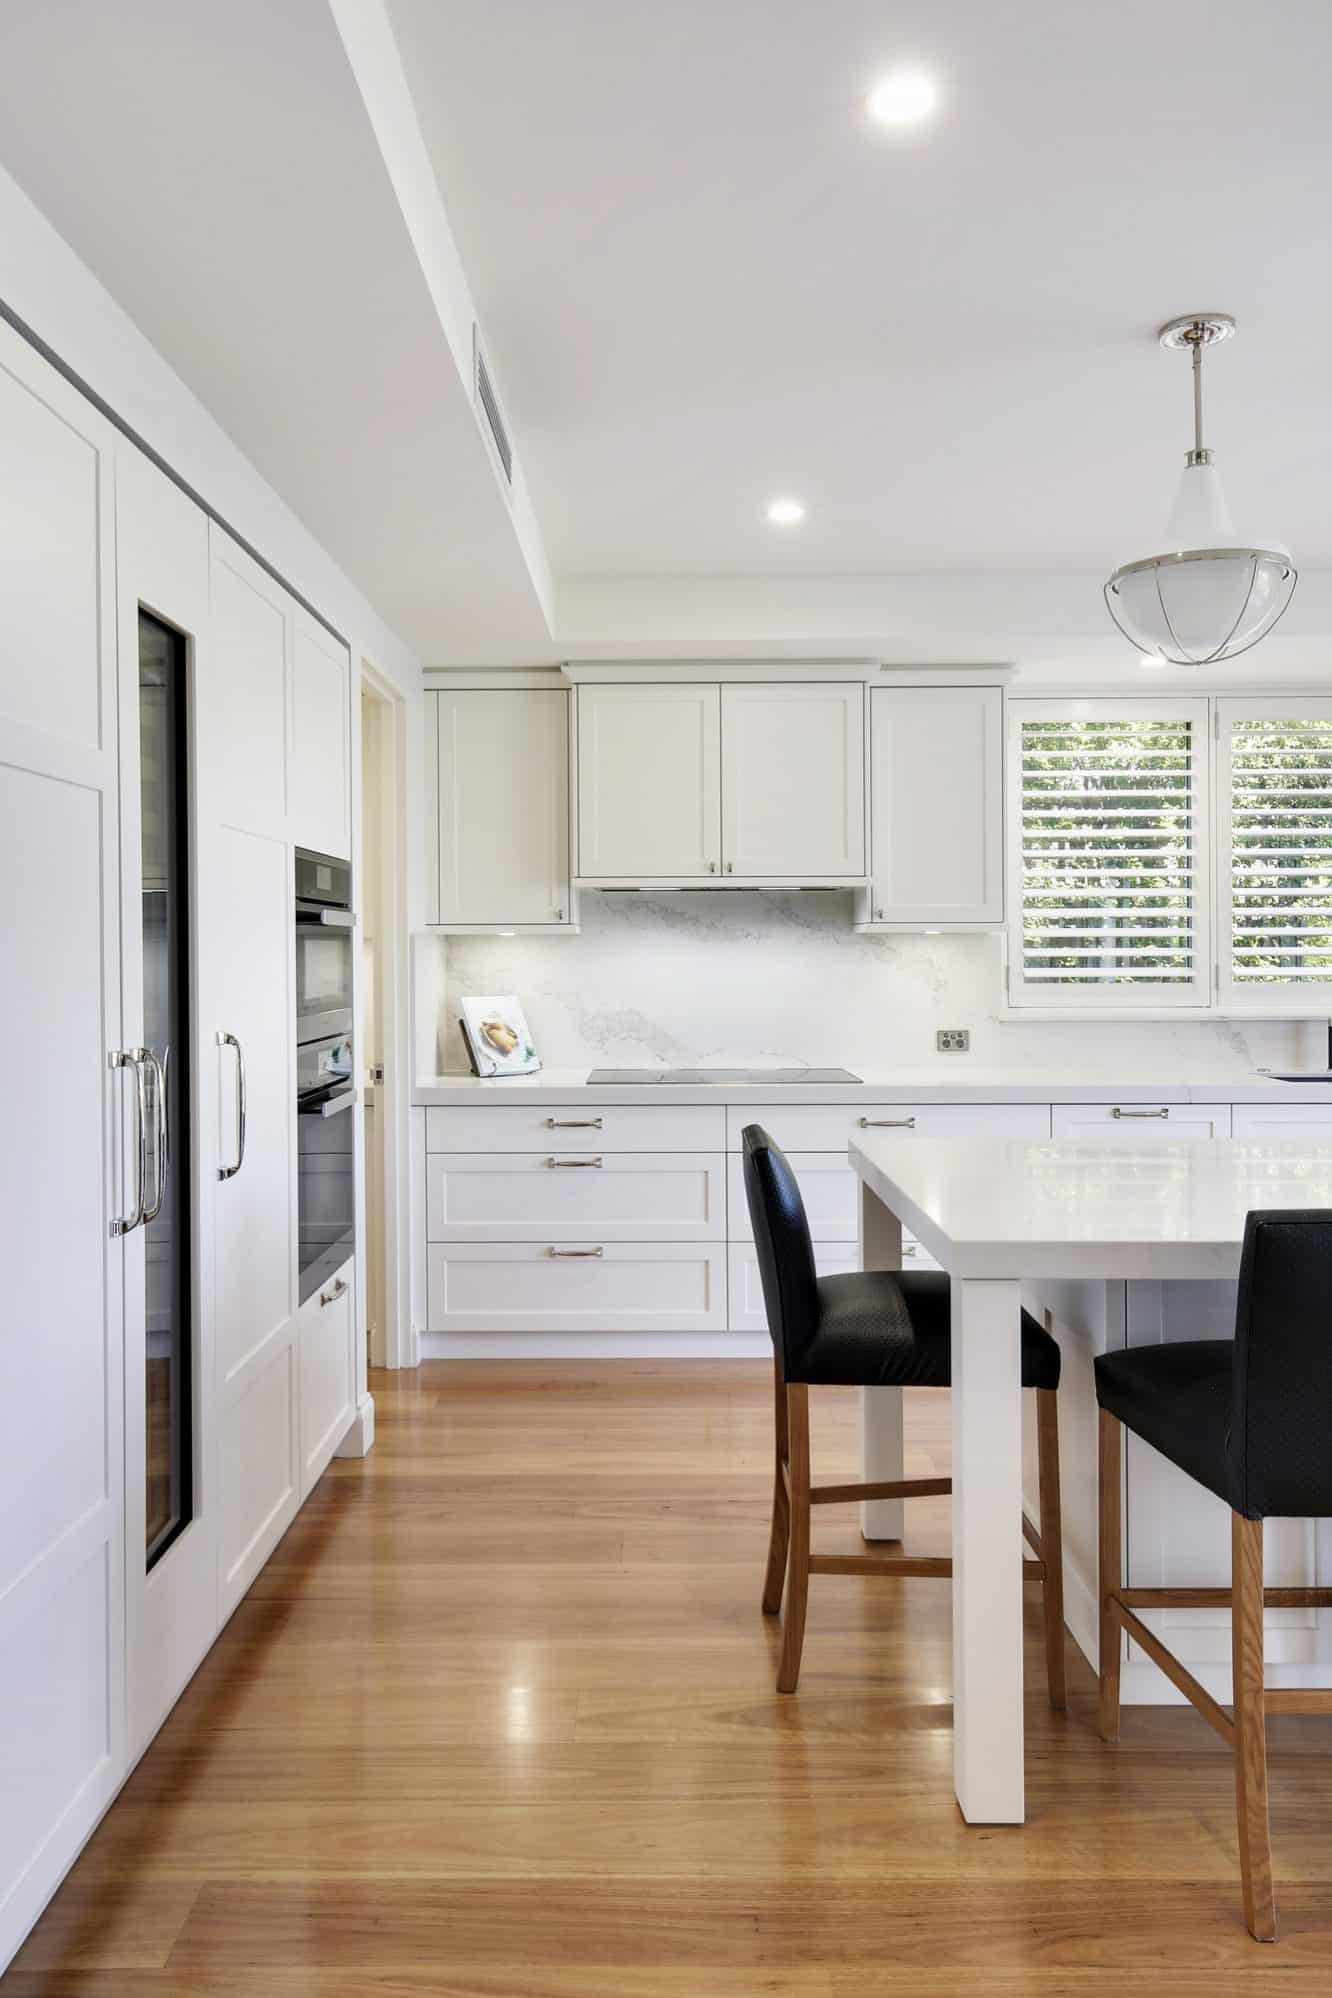 White shaker kitchen with wide timber planked flooring